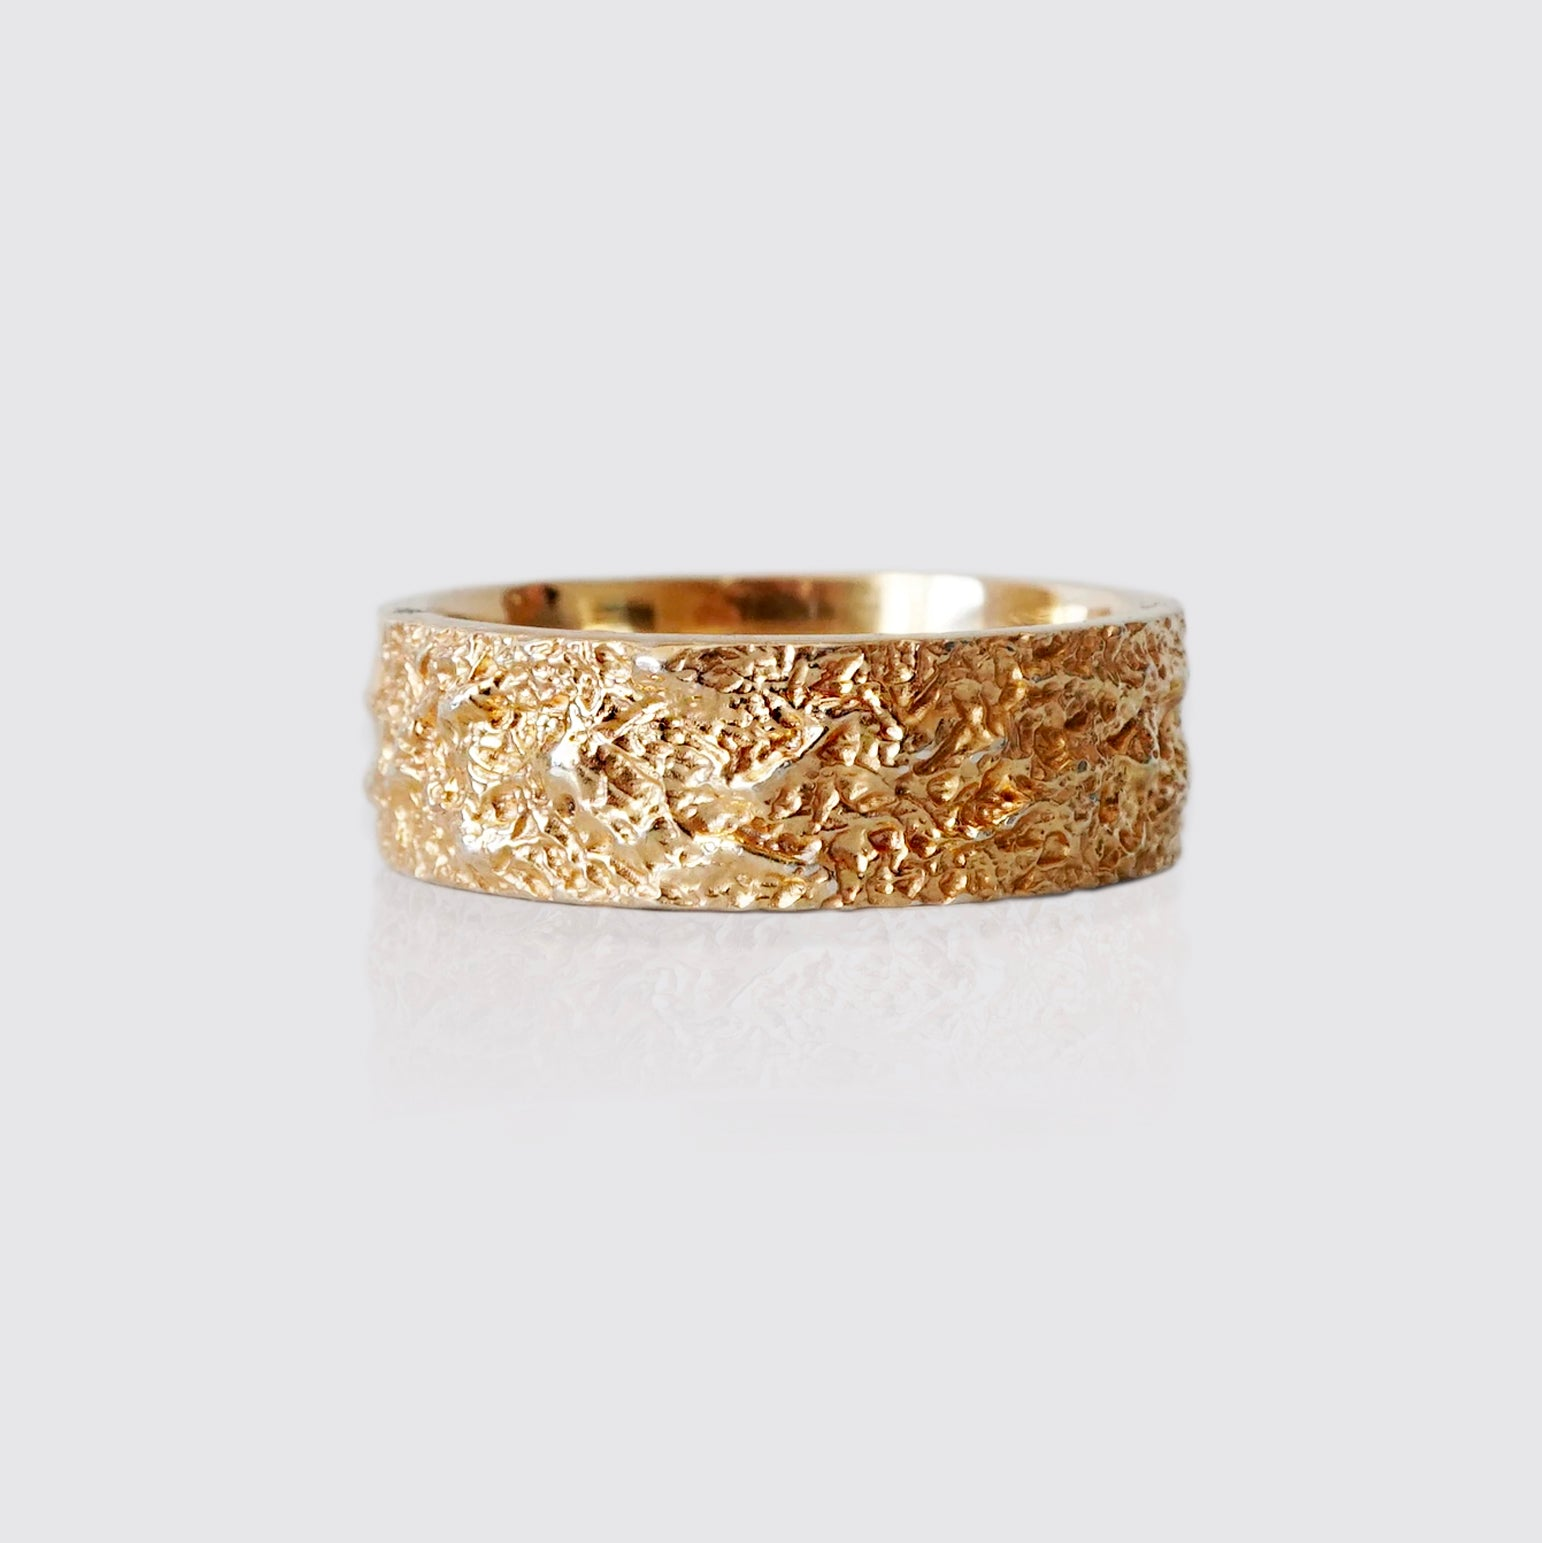 Meteoroid Ring Band, 7.2mm